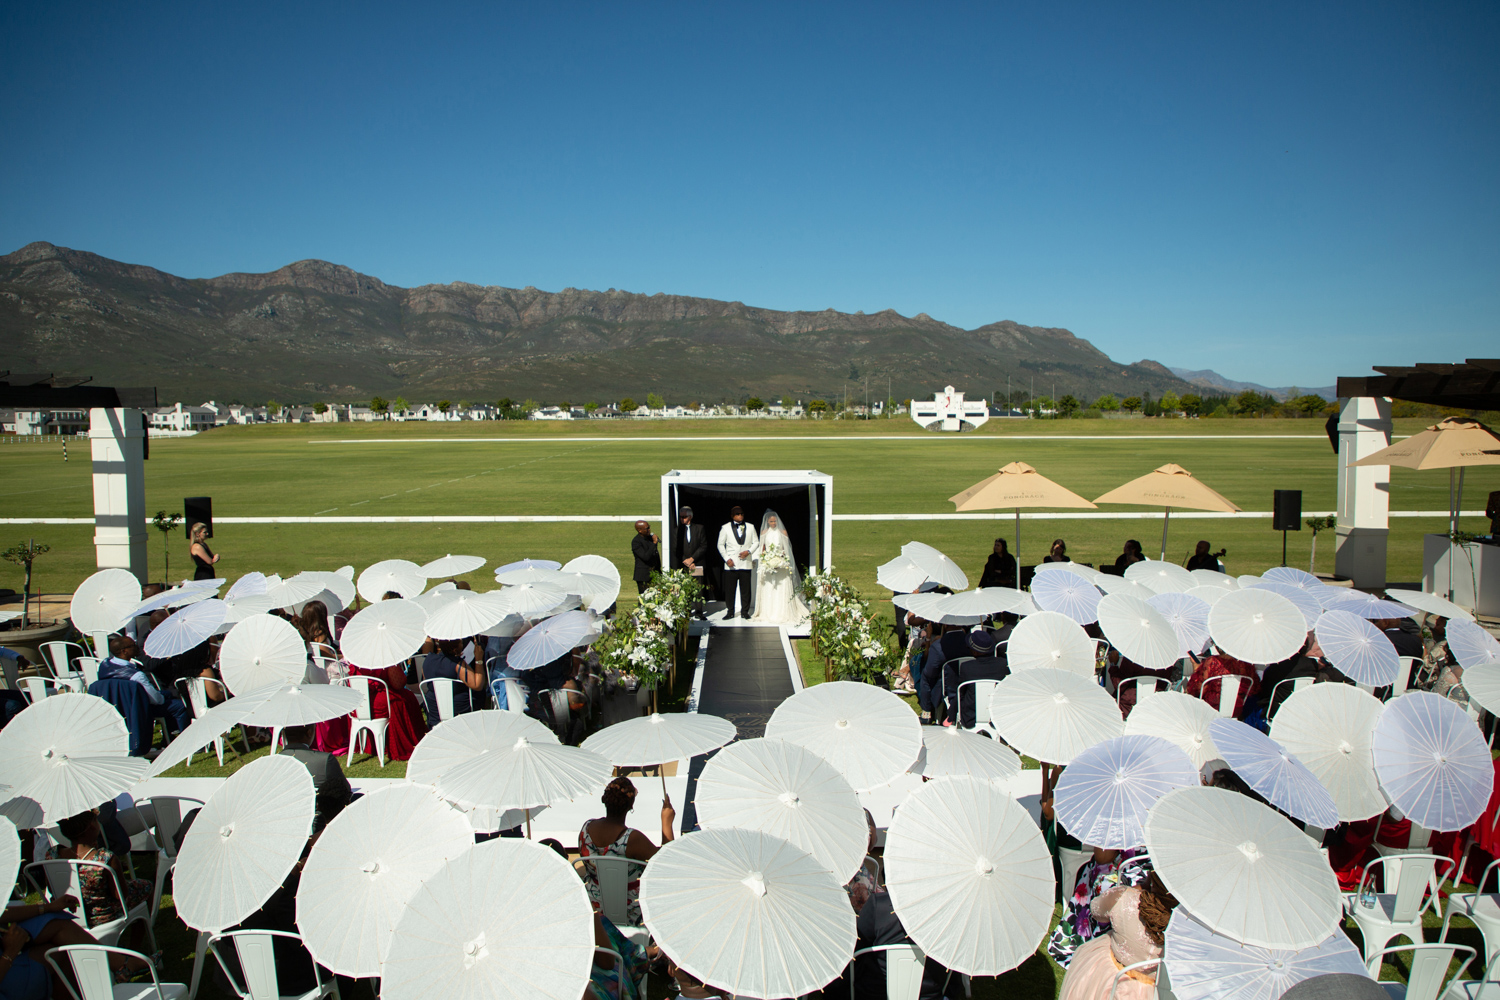 an image taken by Vividblue of the wedding ceremony with guests holding small white umbrellas at Val de Vie.